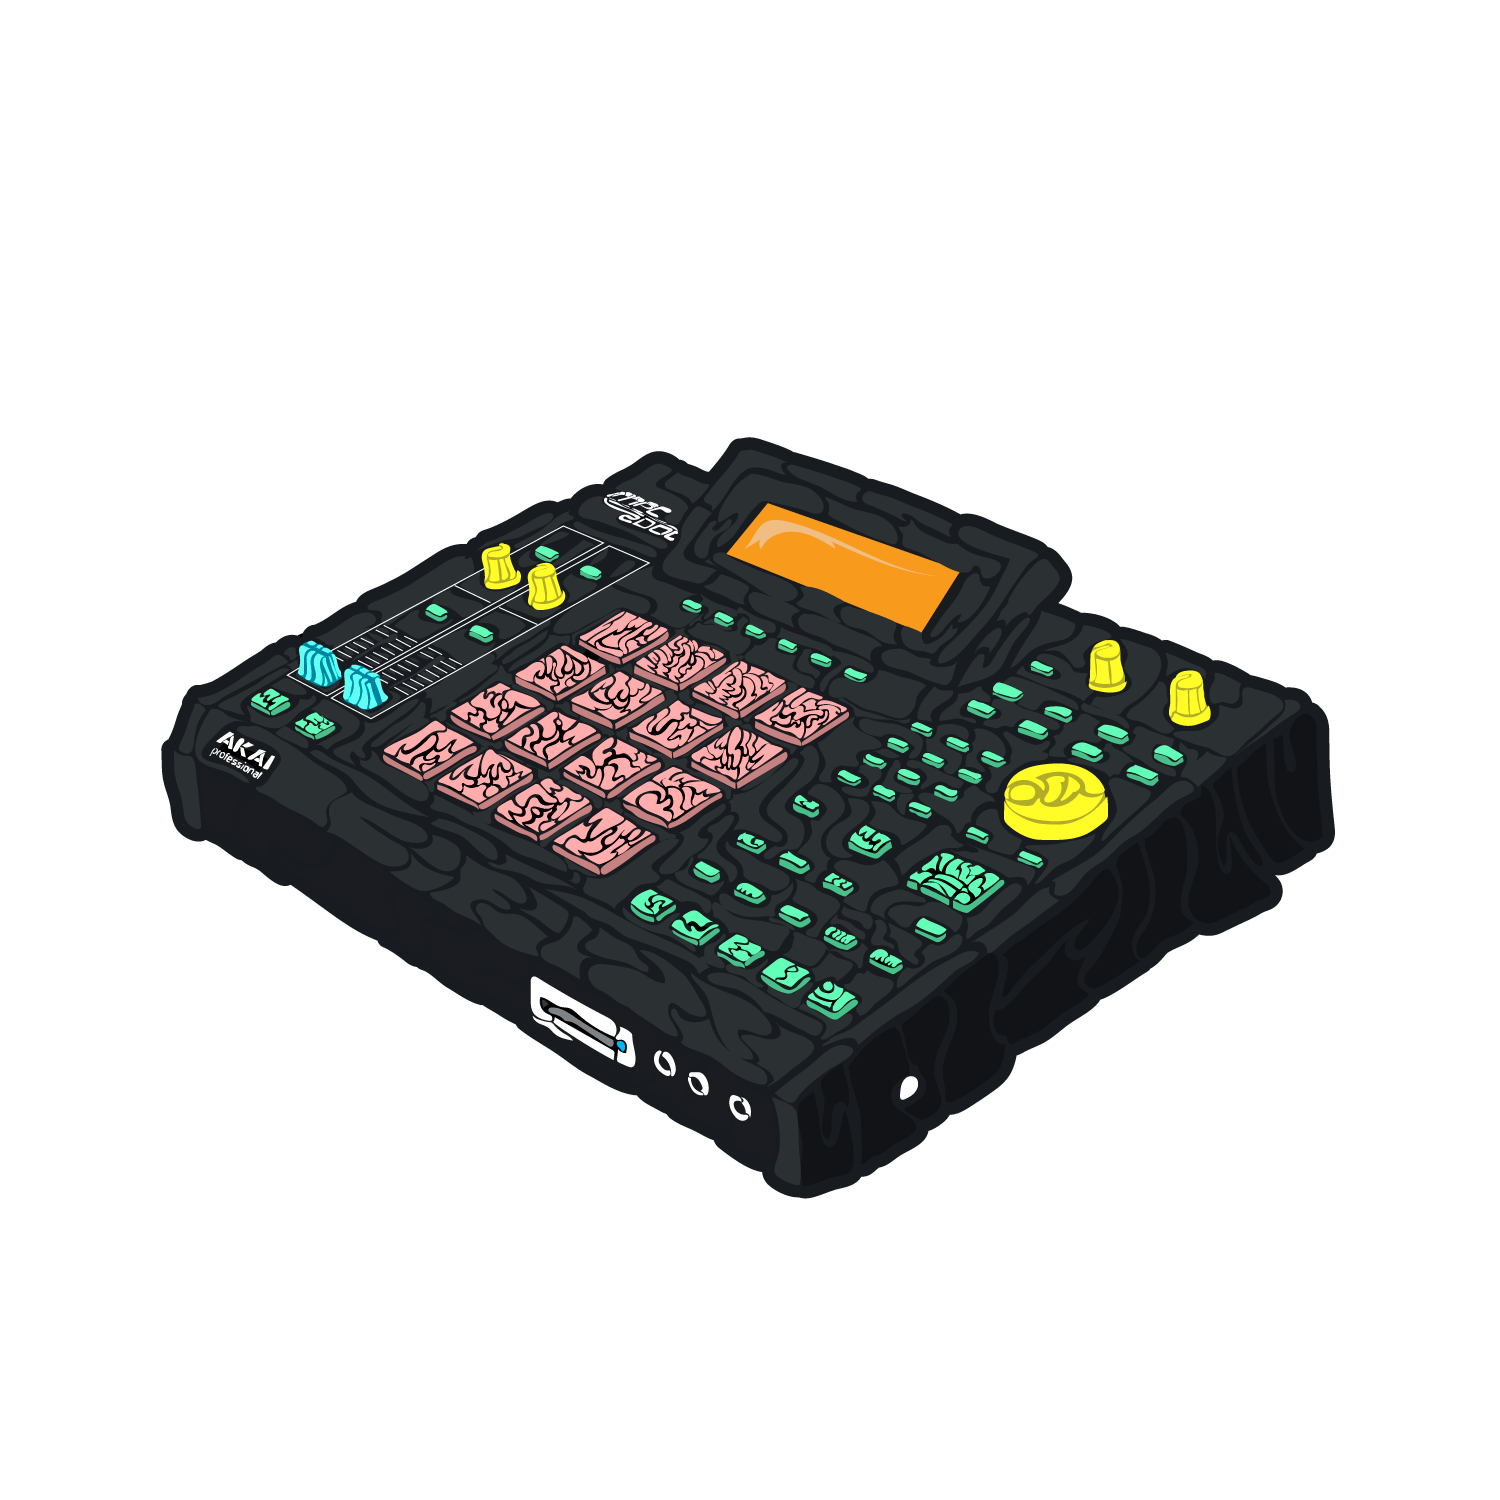 Vibed Out MPC